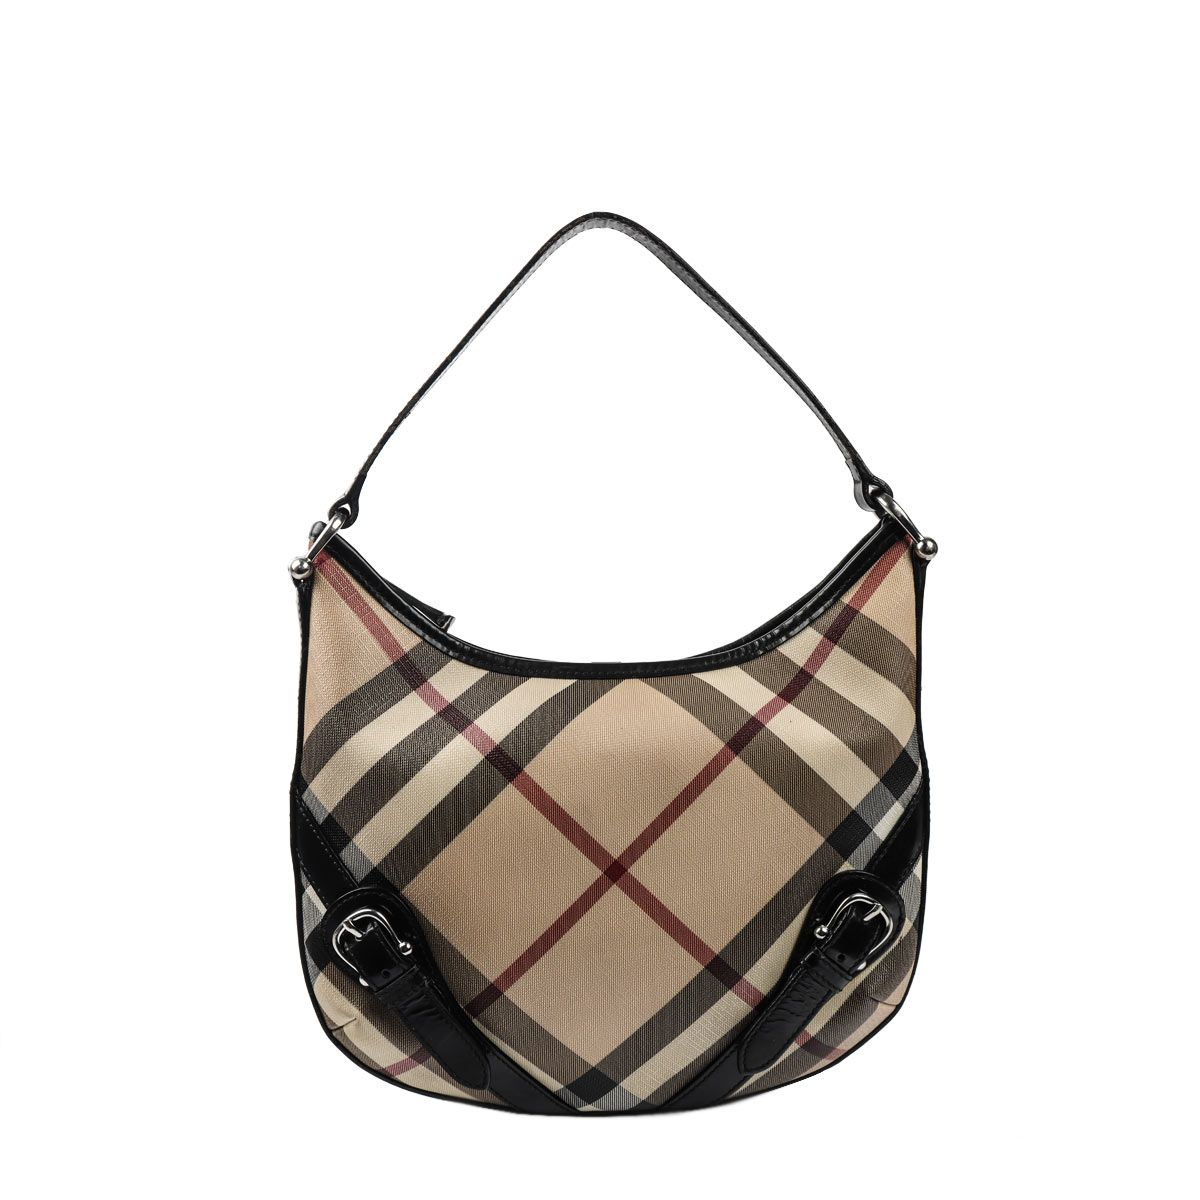 5a369263ee Authentic Burberry Classic Nova Check Brooke Hobo